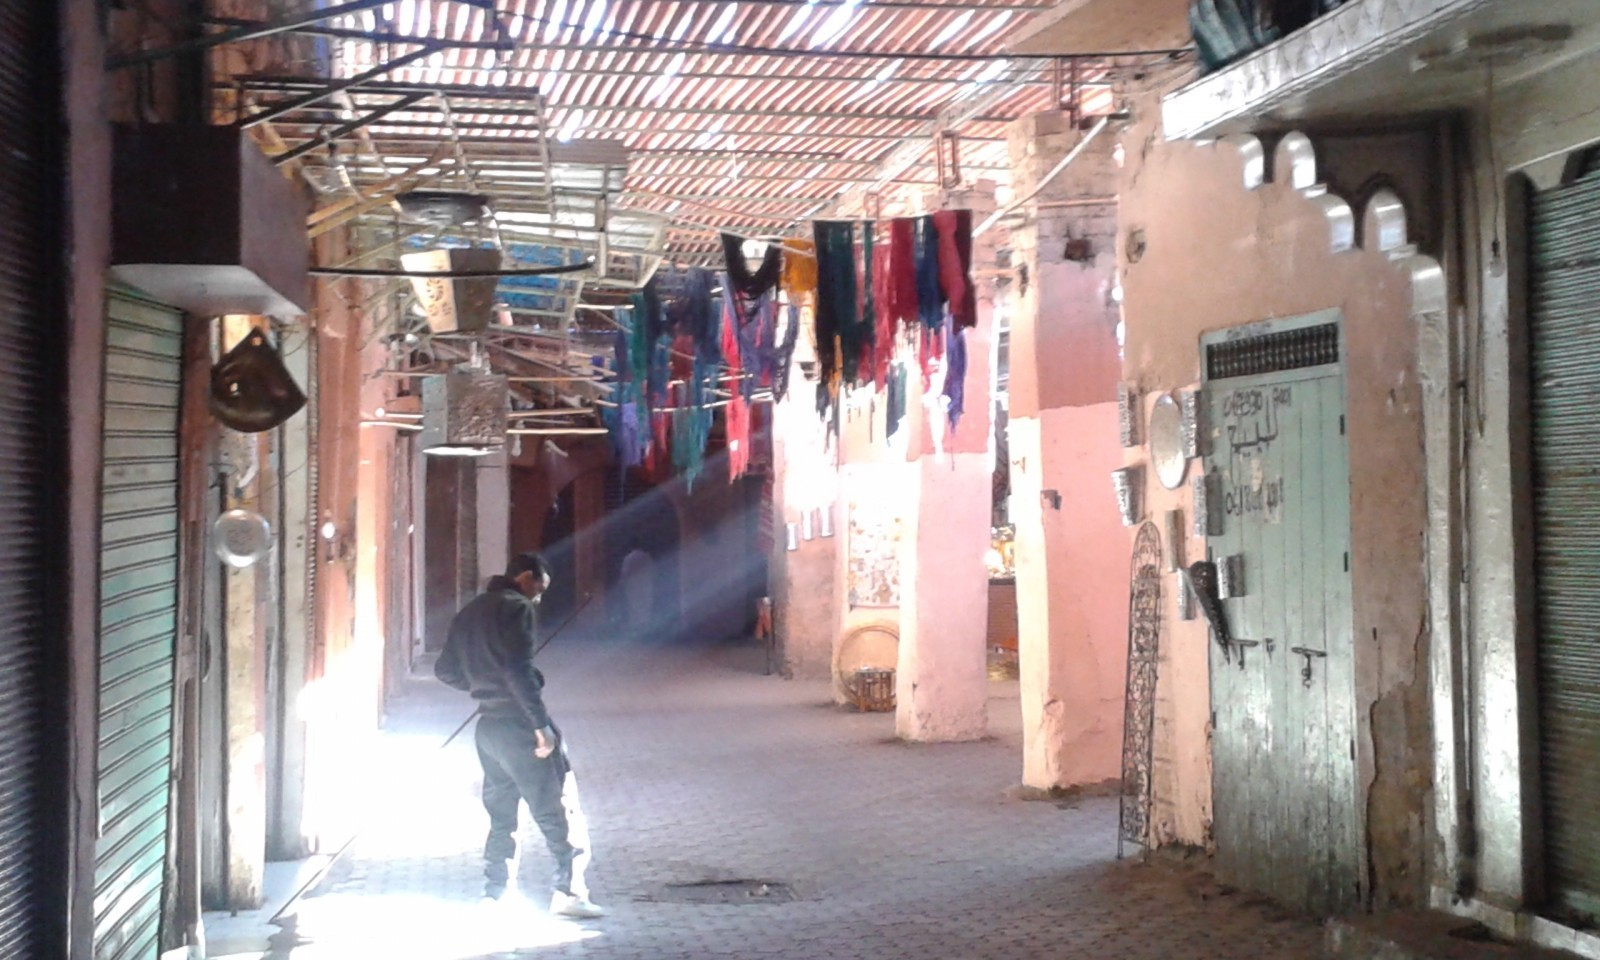 Marrakech souks early in the morning